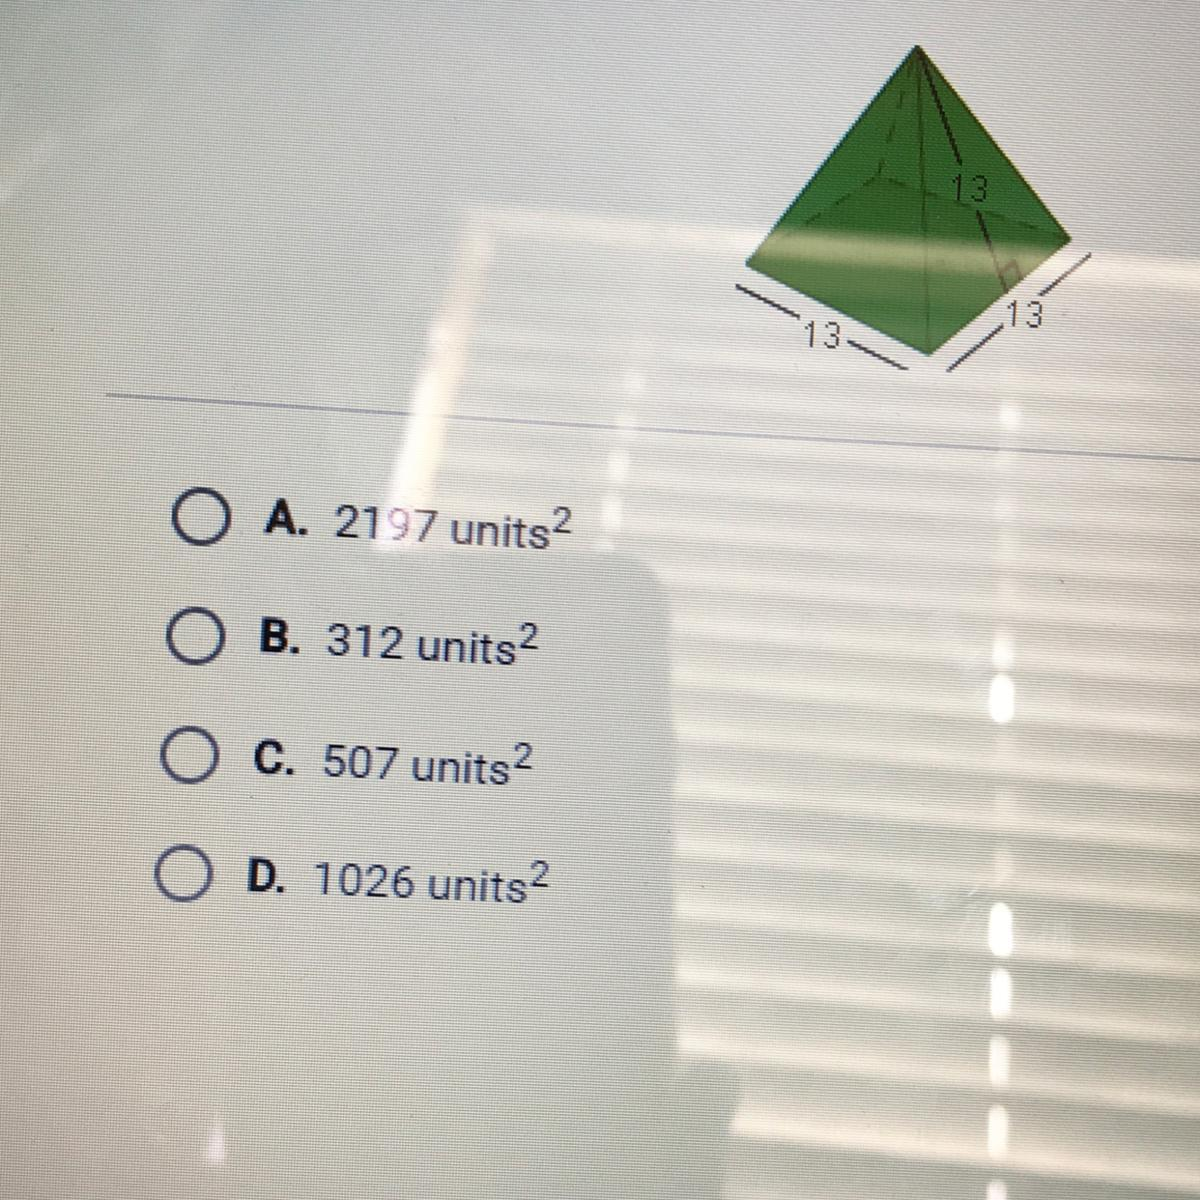 What Is The Surface Area Of The Rectangular Pyramid Below